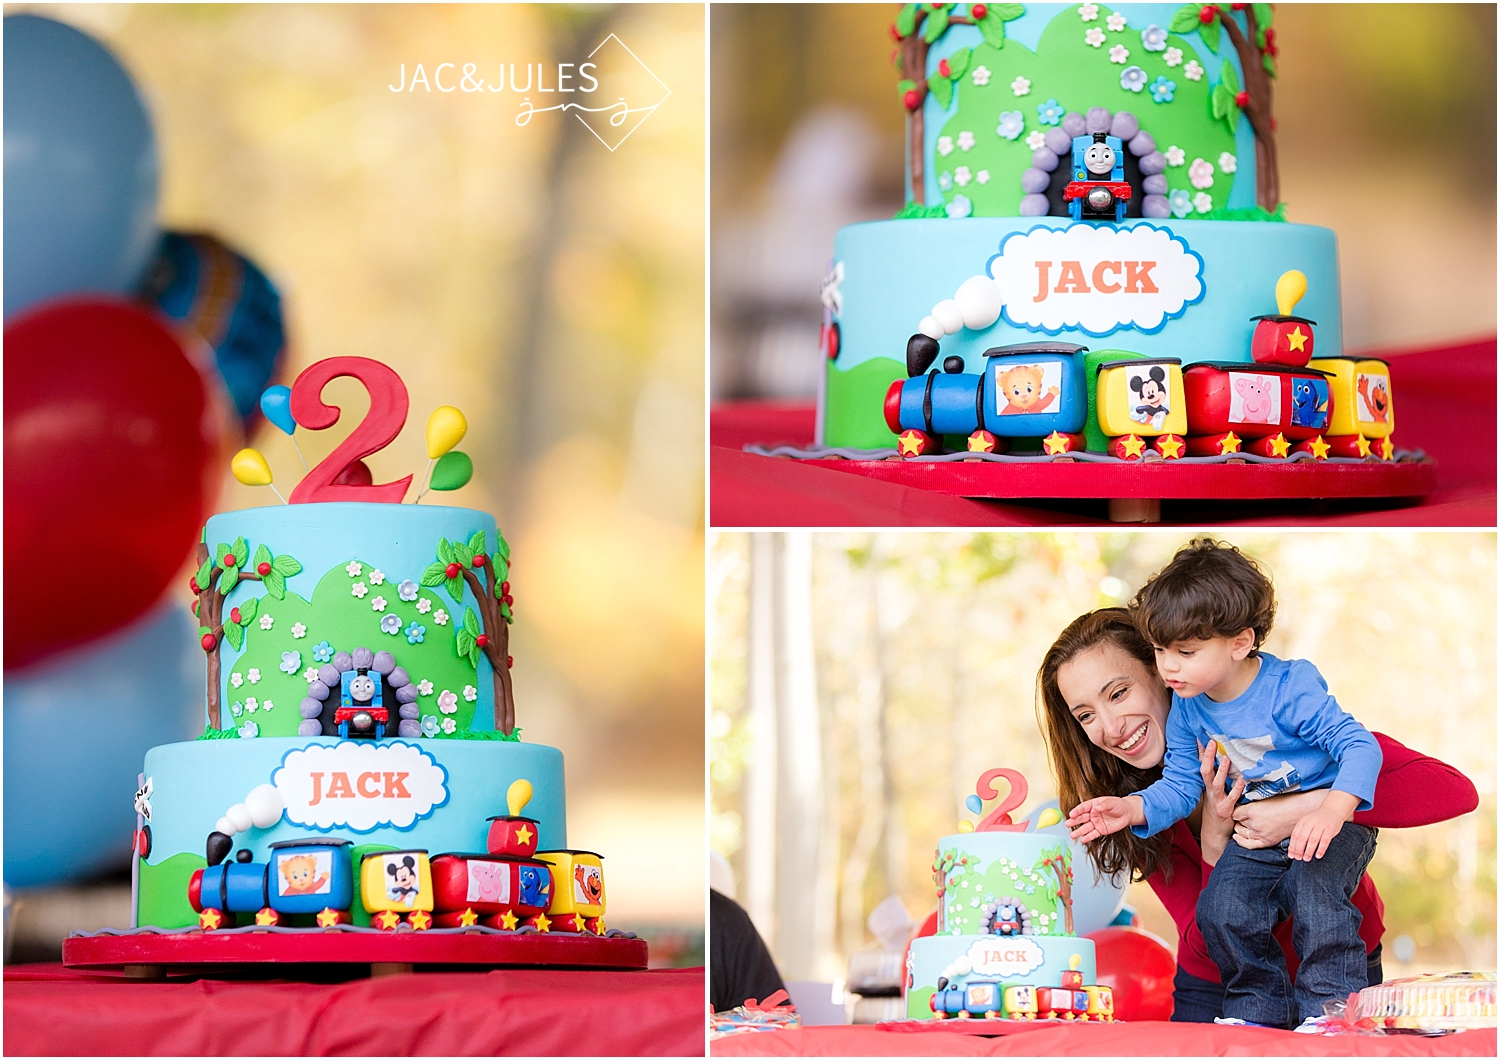 jacnjules photograph train themed birthday party in Paramus, NJ